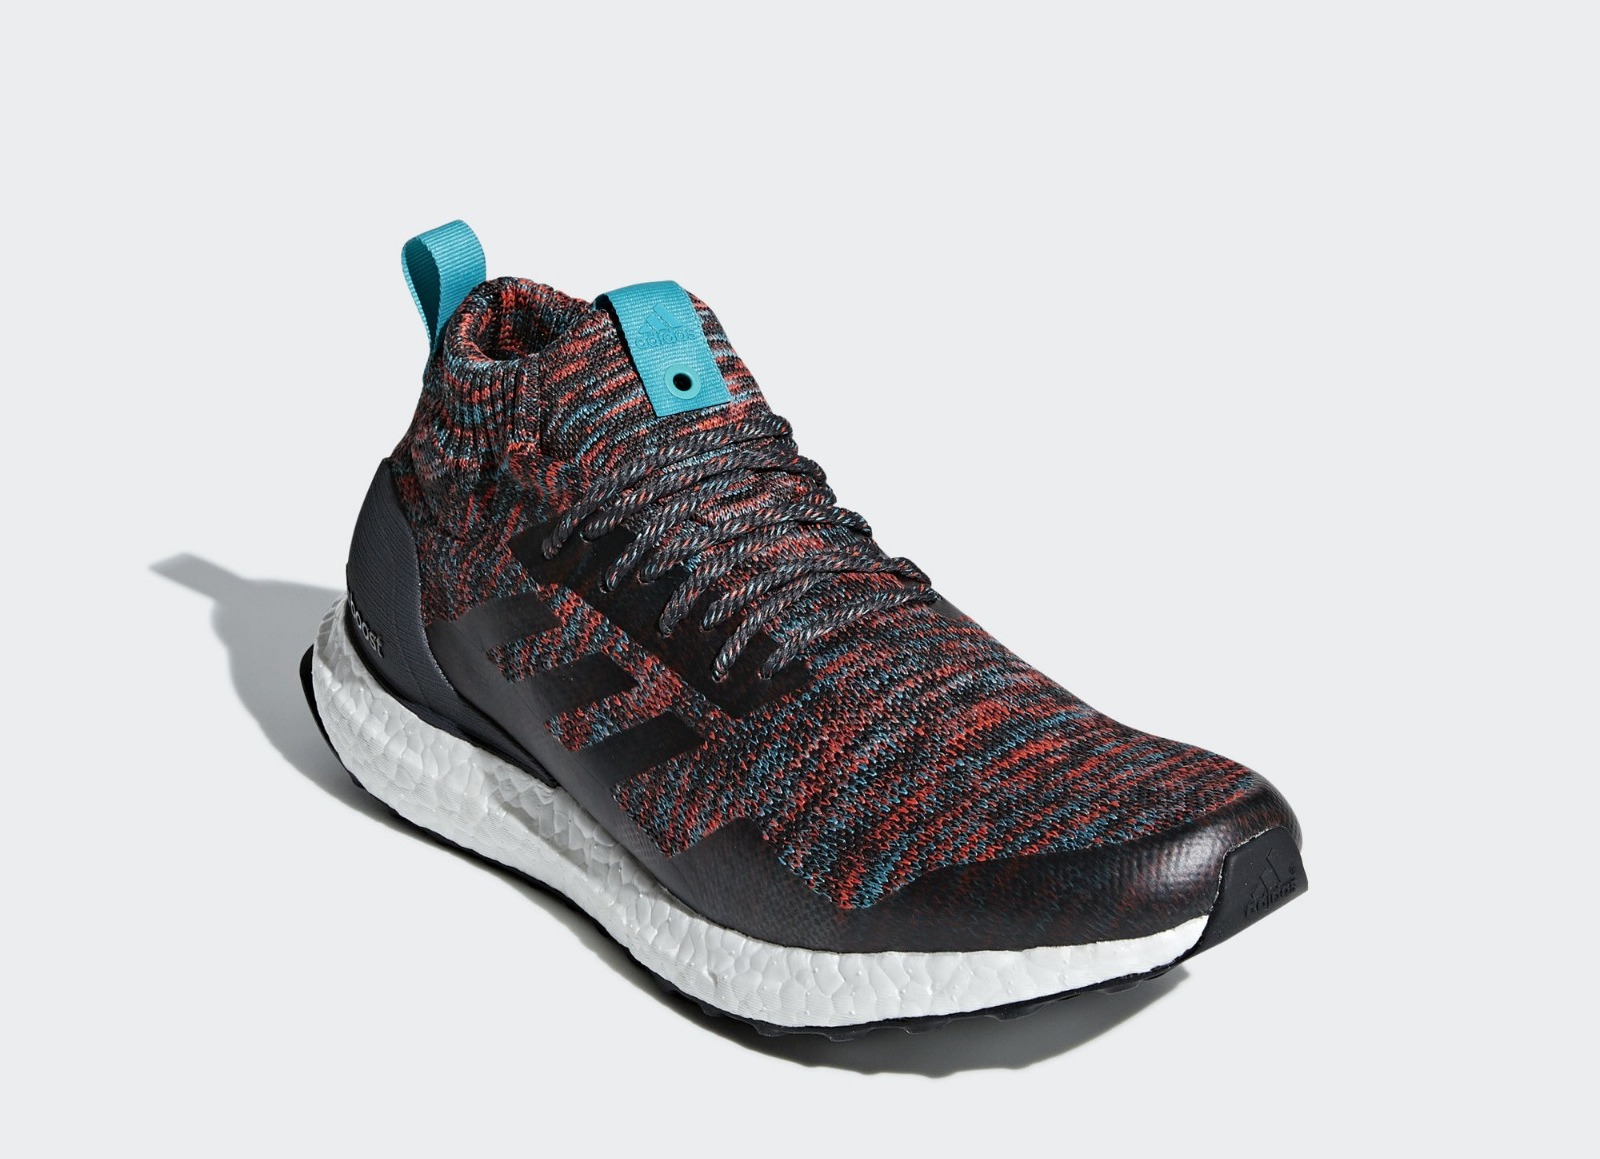 Vente en gros adidas ultra boost mid Pas cher commulangues.be